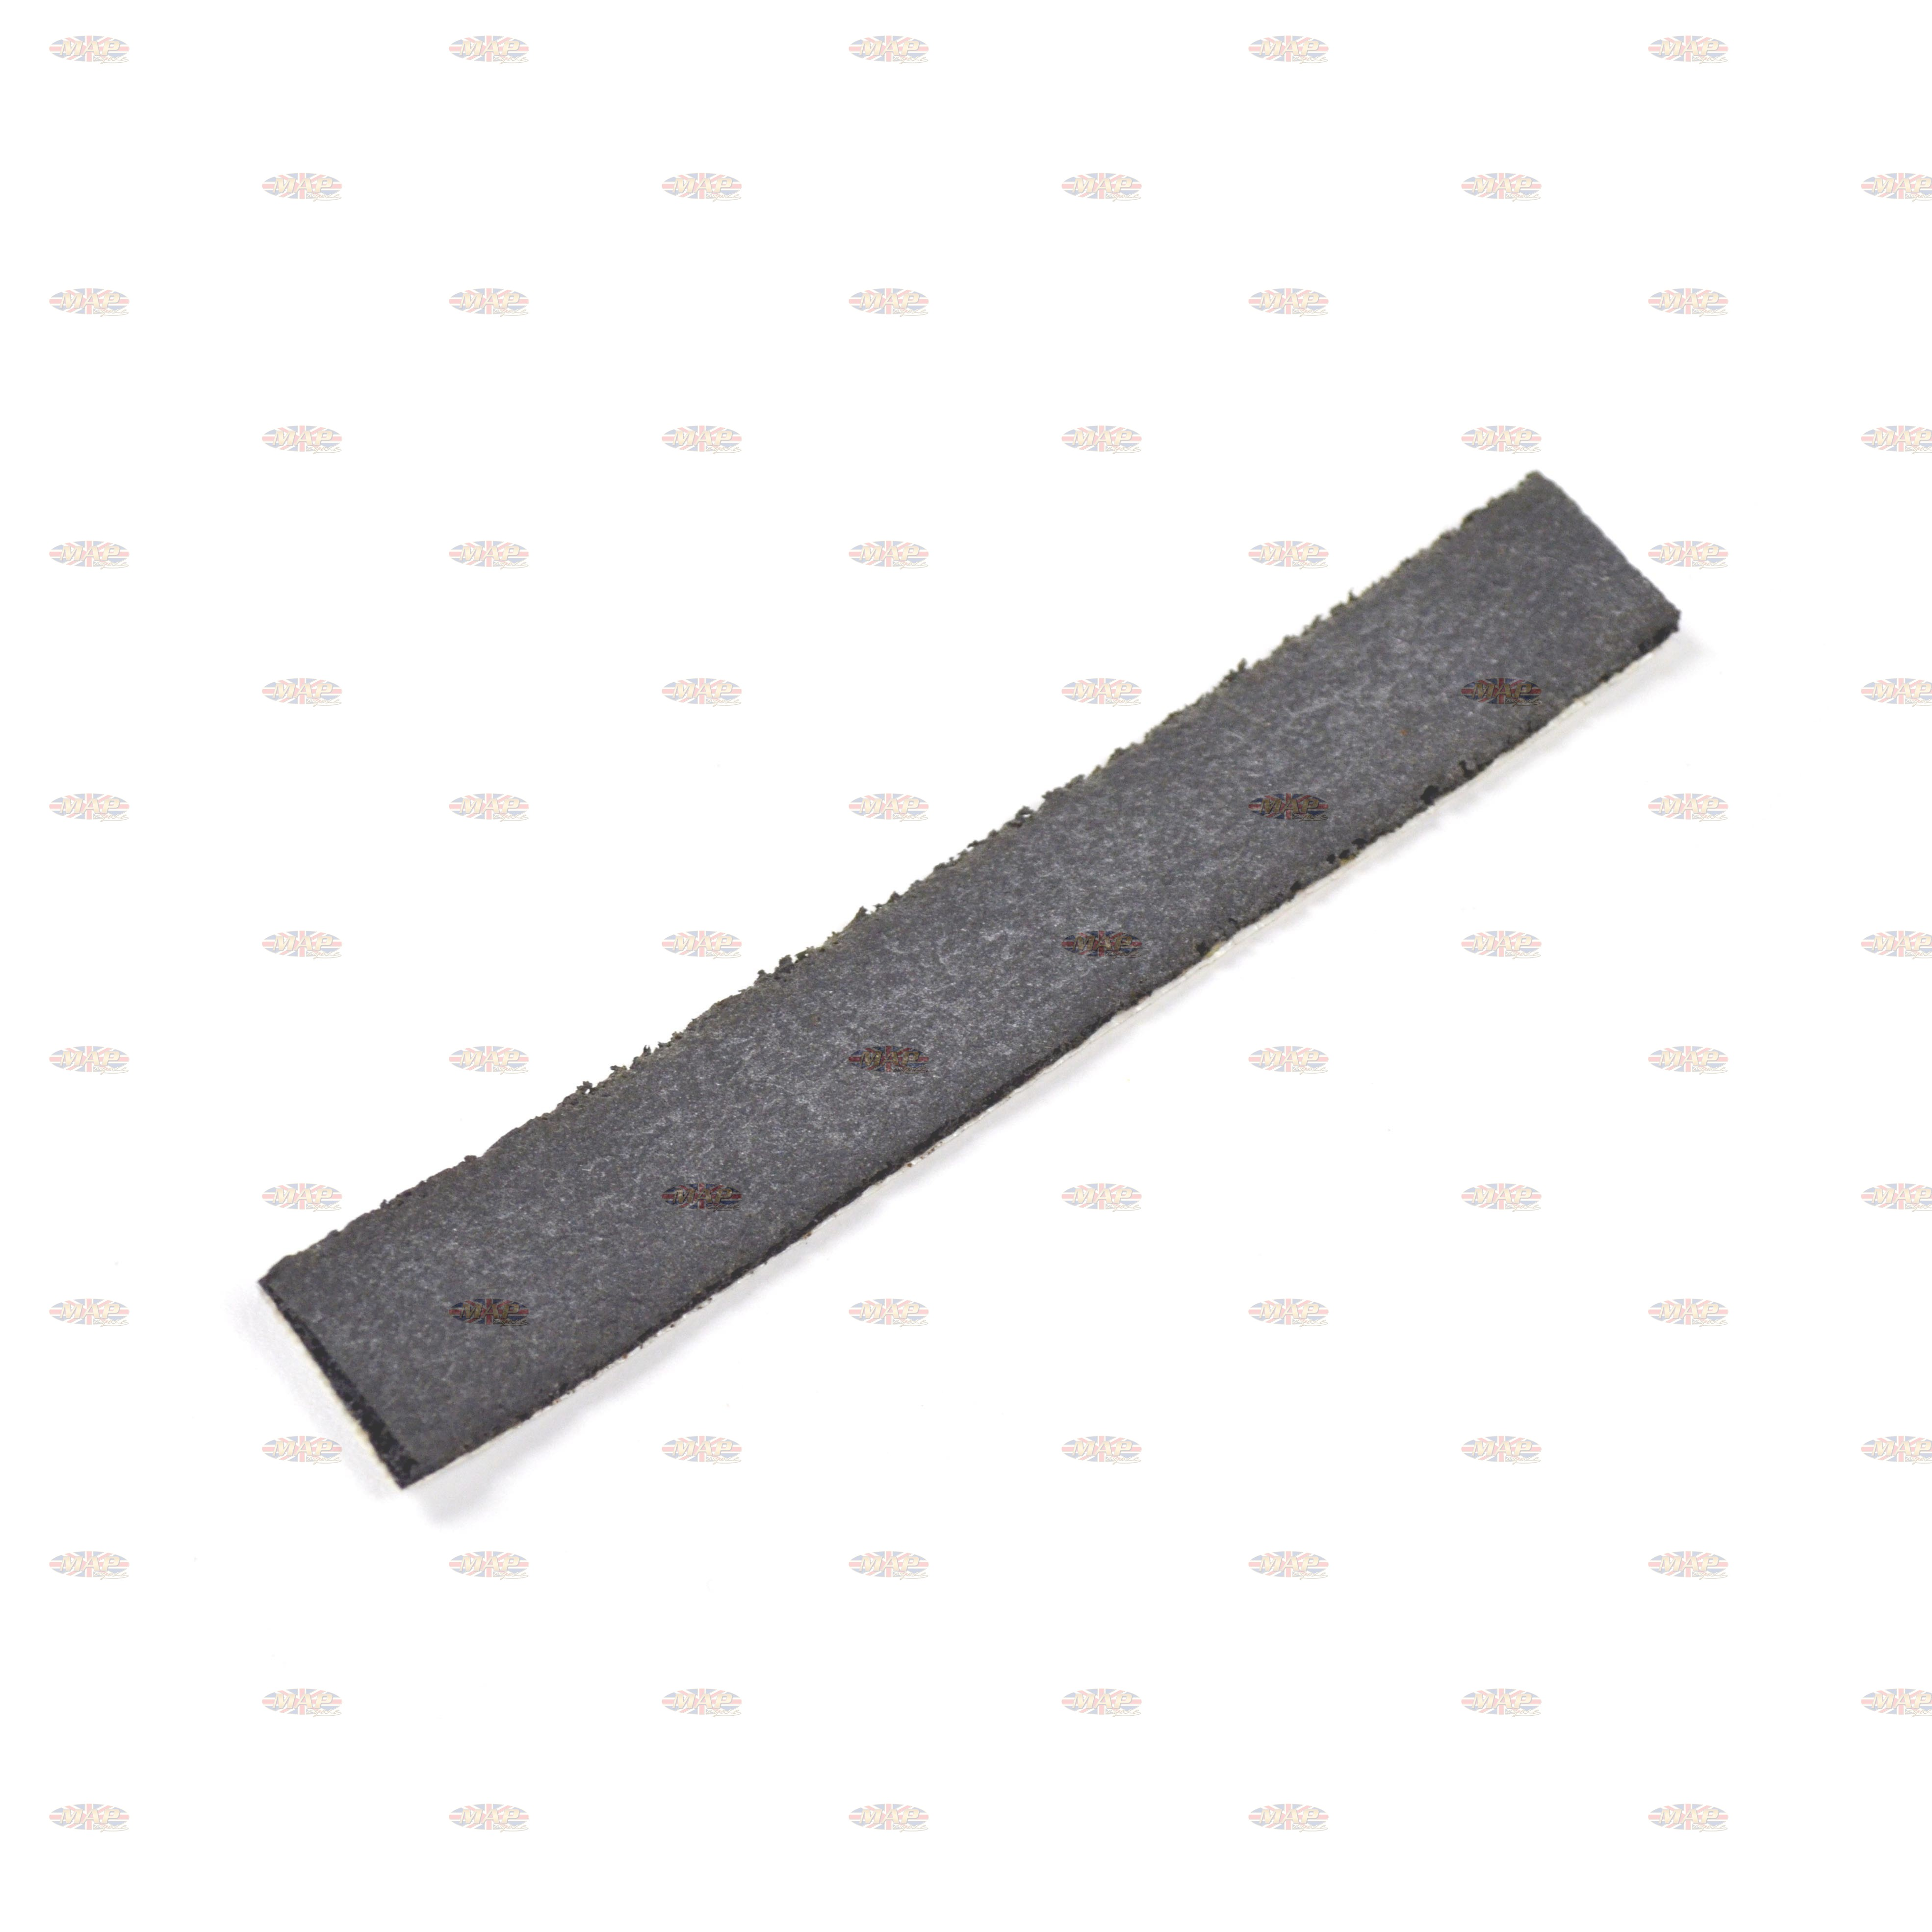 Triumph Battery Tray (Carrier) Rubber Side Pads 82-8031